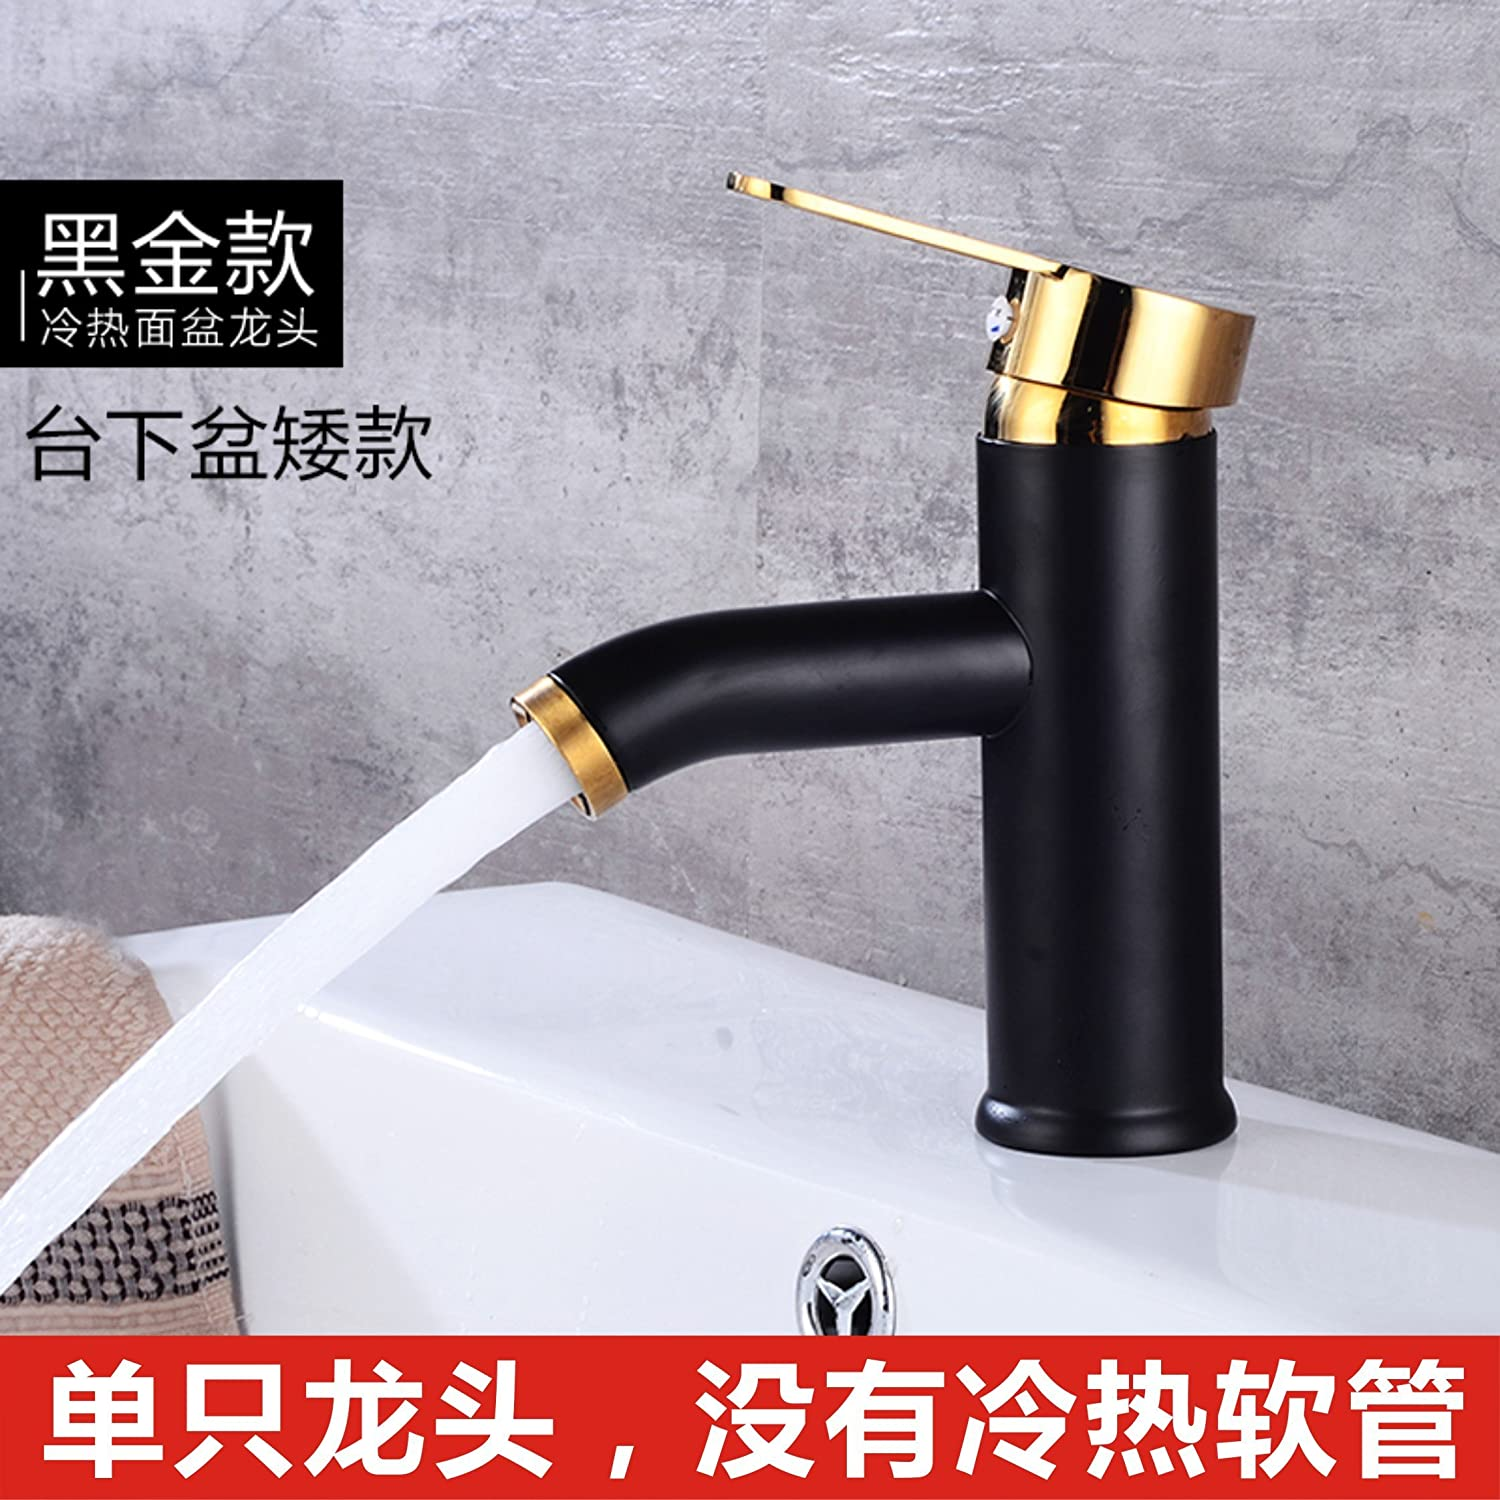 JONTON Bathroom Faucet Sink Taps Diy & Tools Taps Black Paint Stainless Steel Matte Scrub Bathroom Wash Basin Sink Above Counter Basin Single Hole Hot And Cold Water Faucet, Black gold Single Faucet